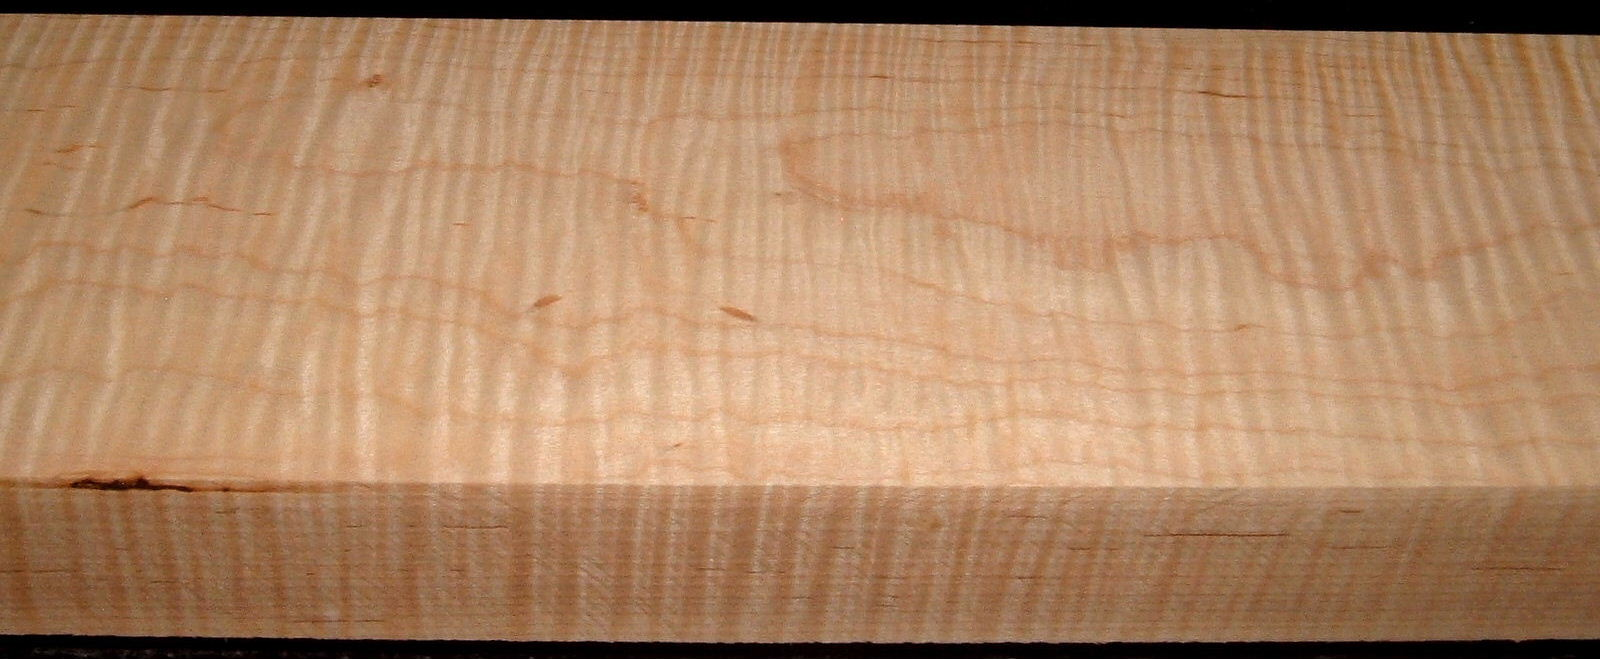 M2009-721, 1-13/16x5-1/4x46, Curly Maple